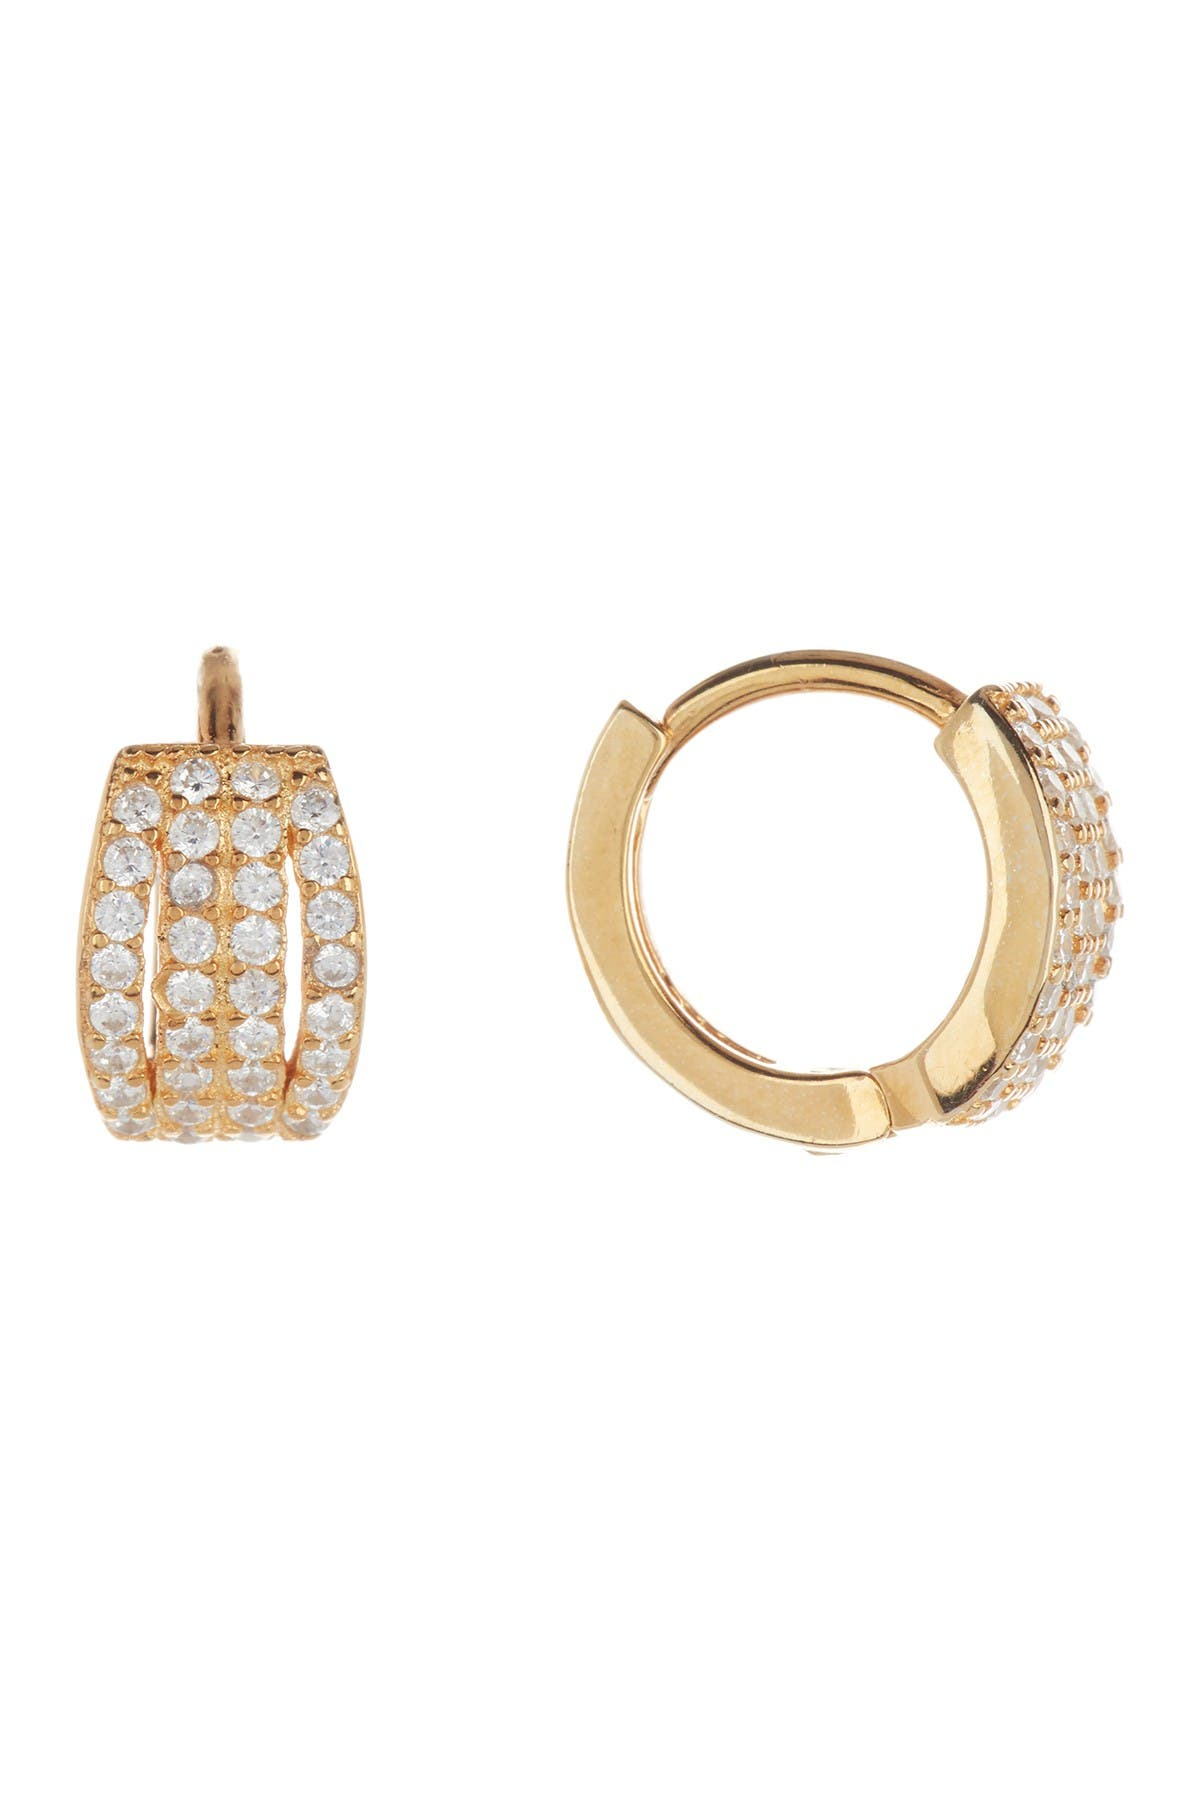 Image of Savvy Cie 18K Yellow Gold Vermeil Micro Pave CZ Huggie Earrings